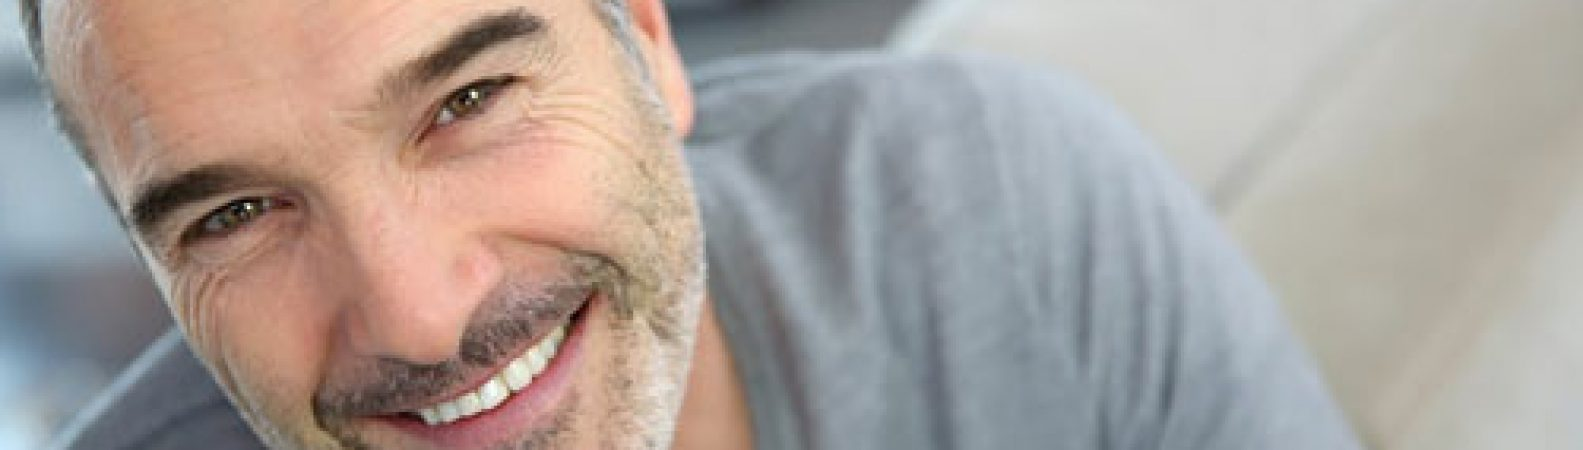 Find Out What You Know About Teeth Replacements [quiz]